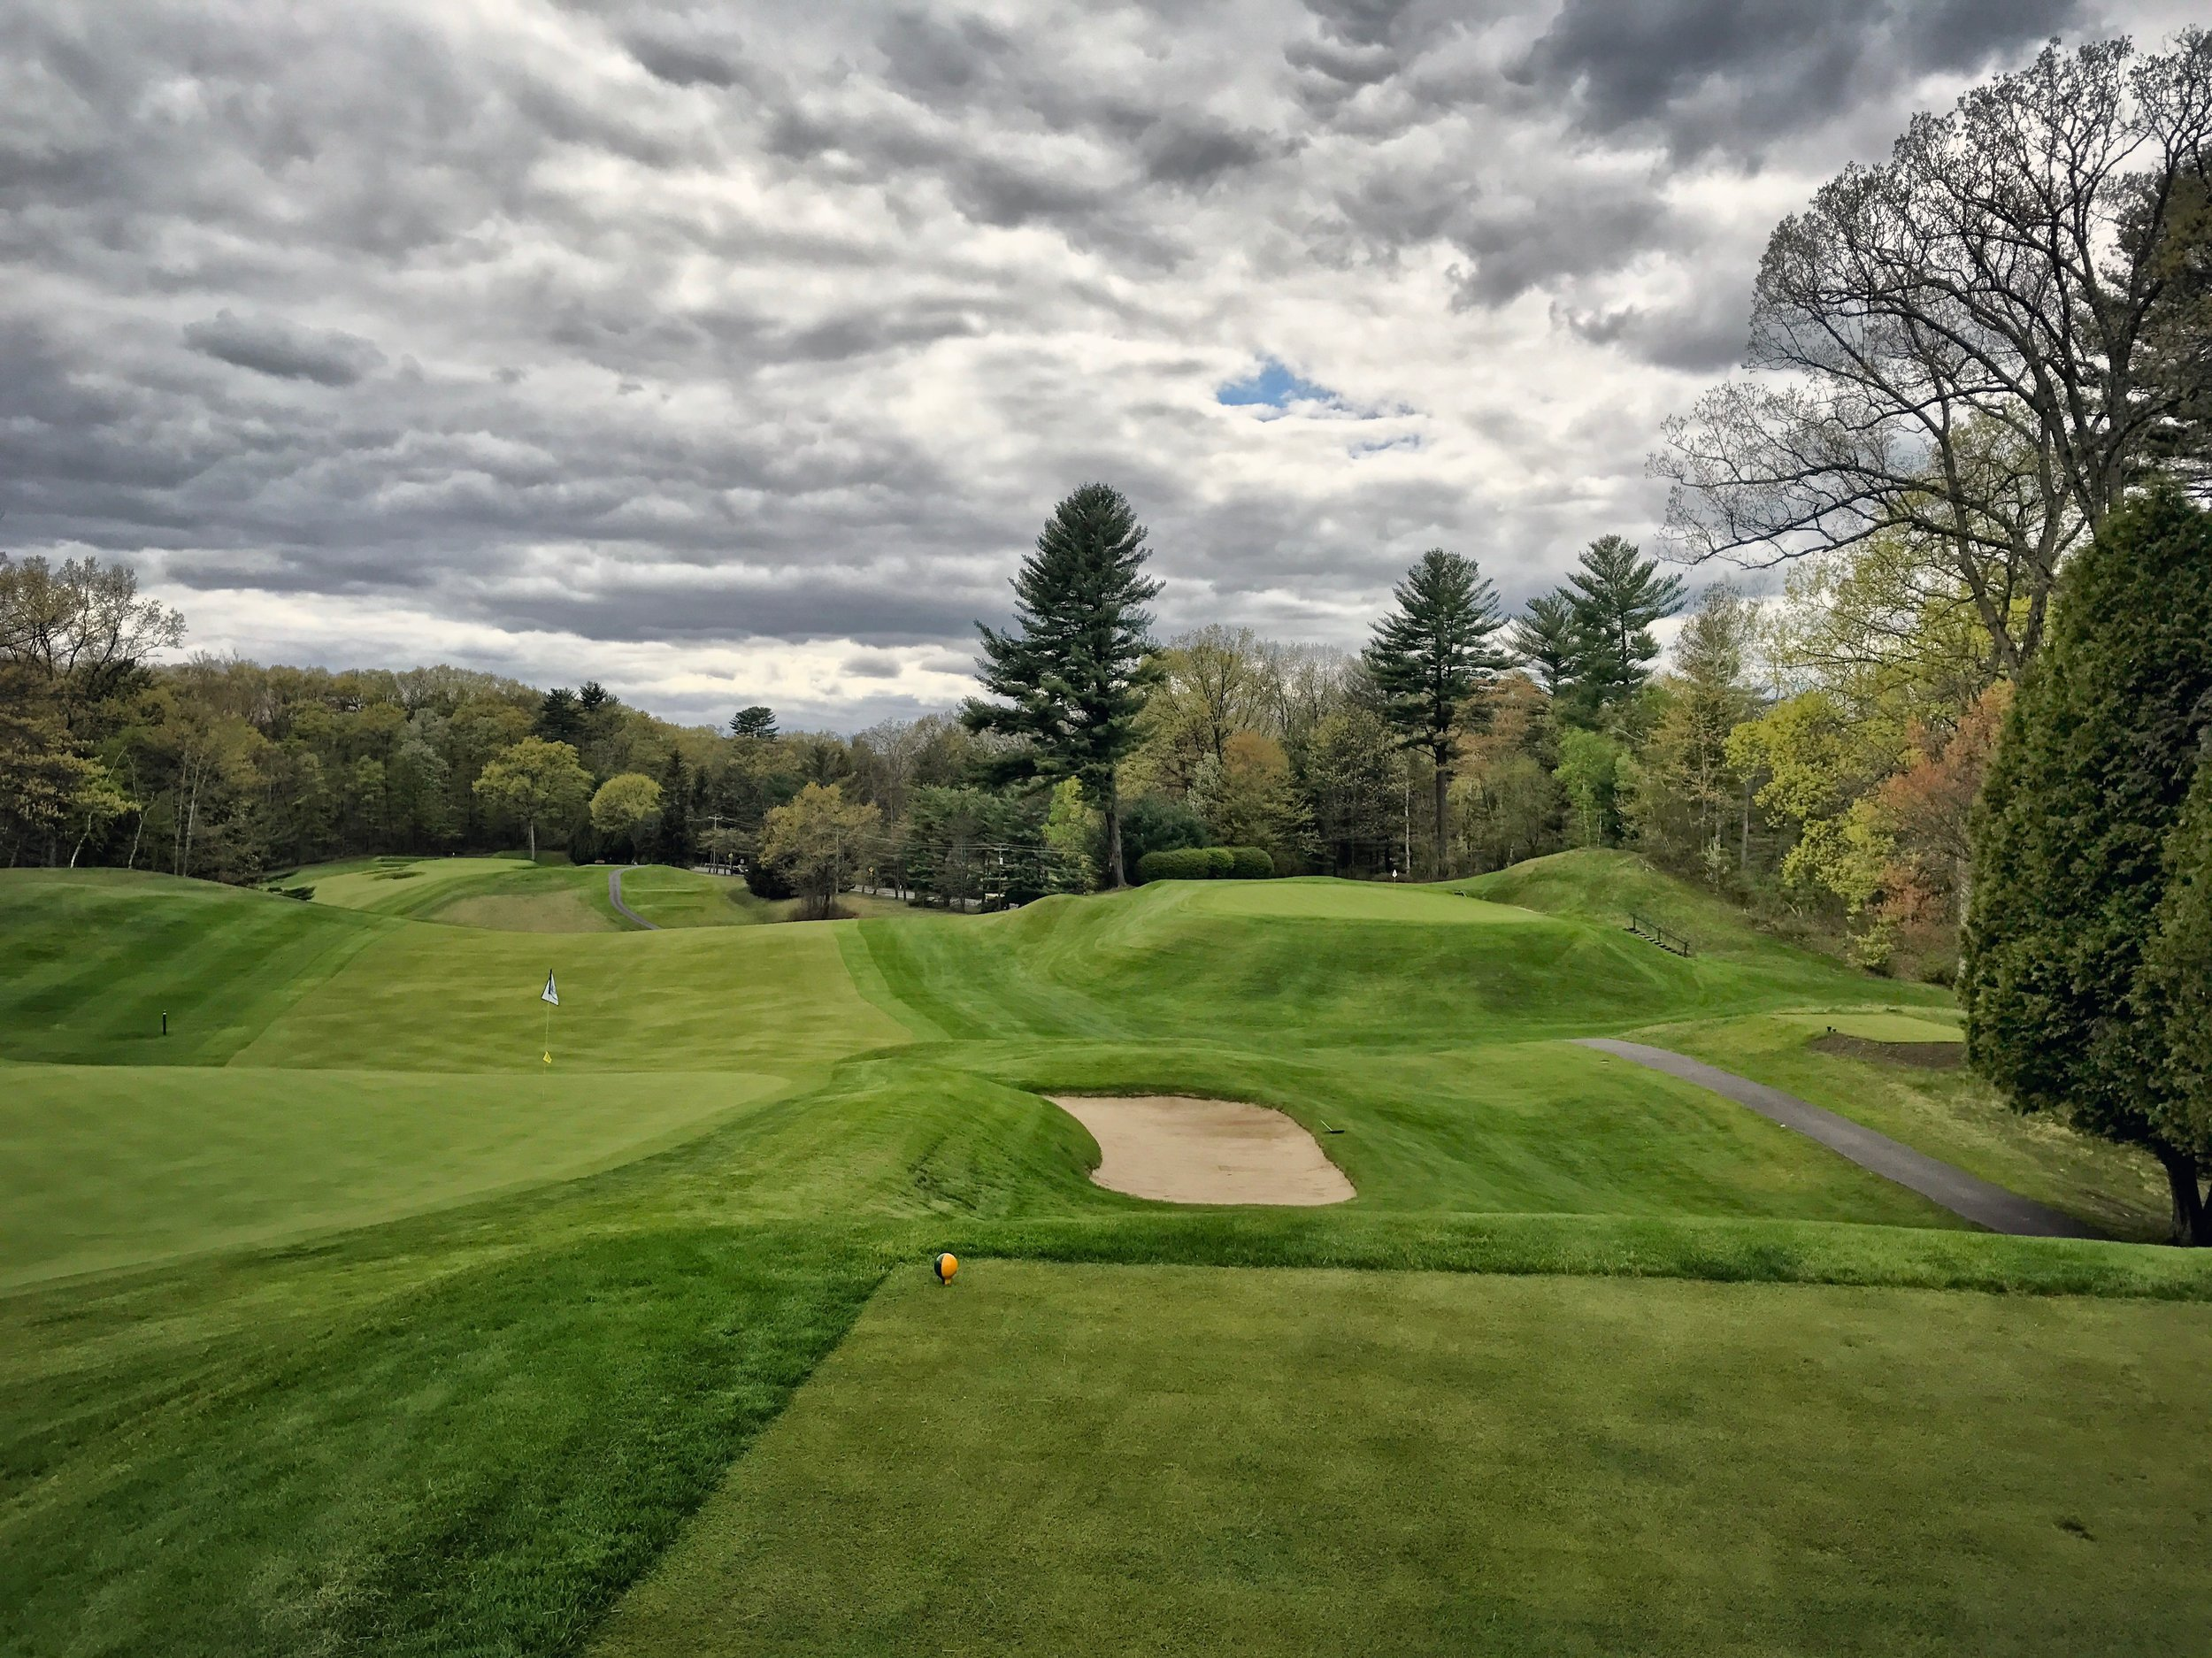 Glens Falls is a rollicking Upstate NY Ross course.